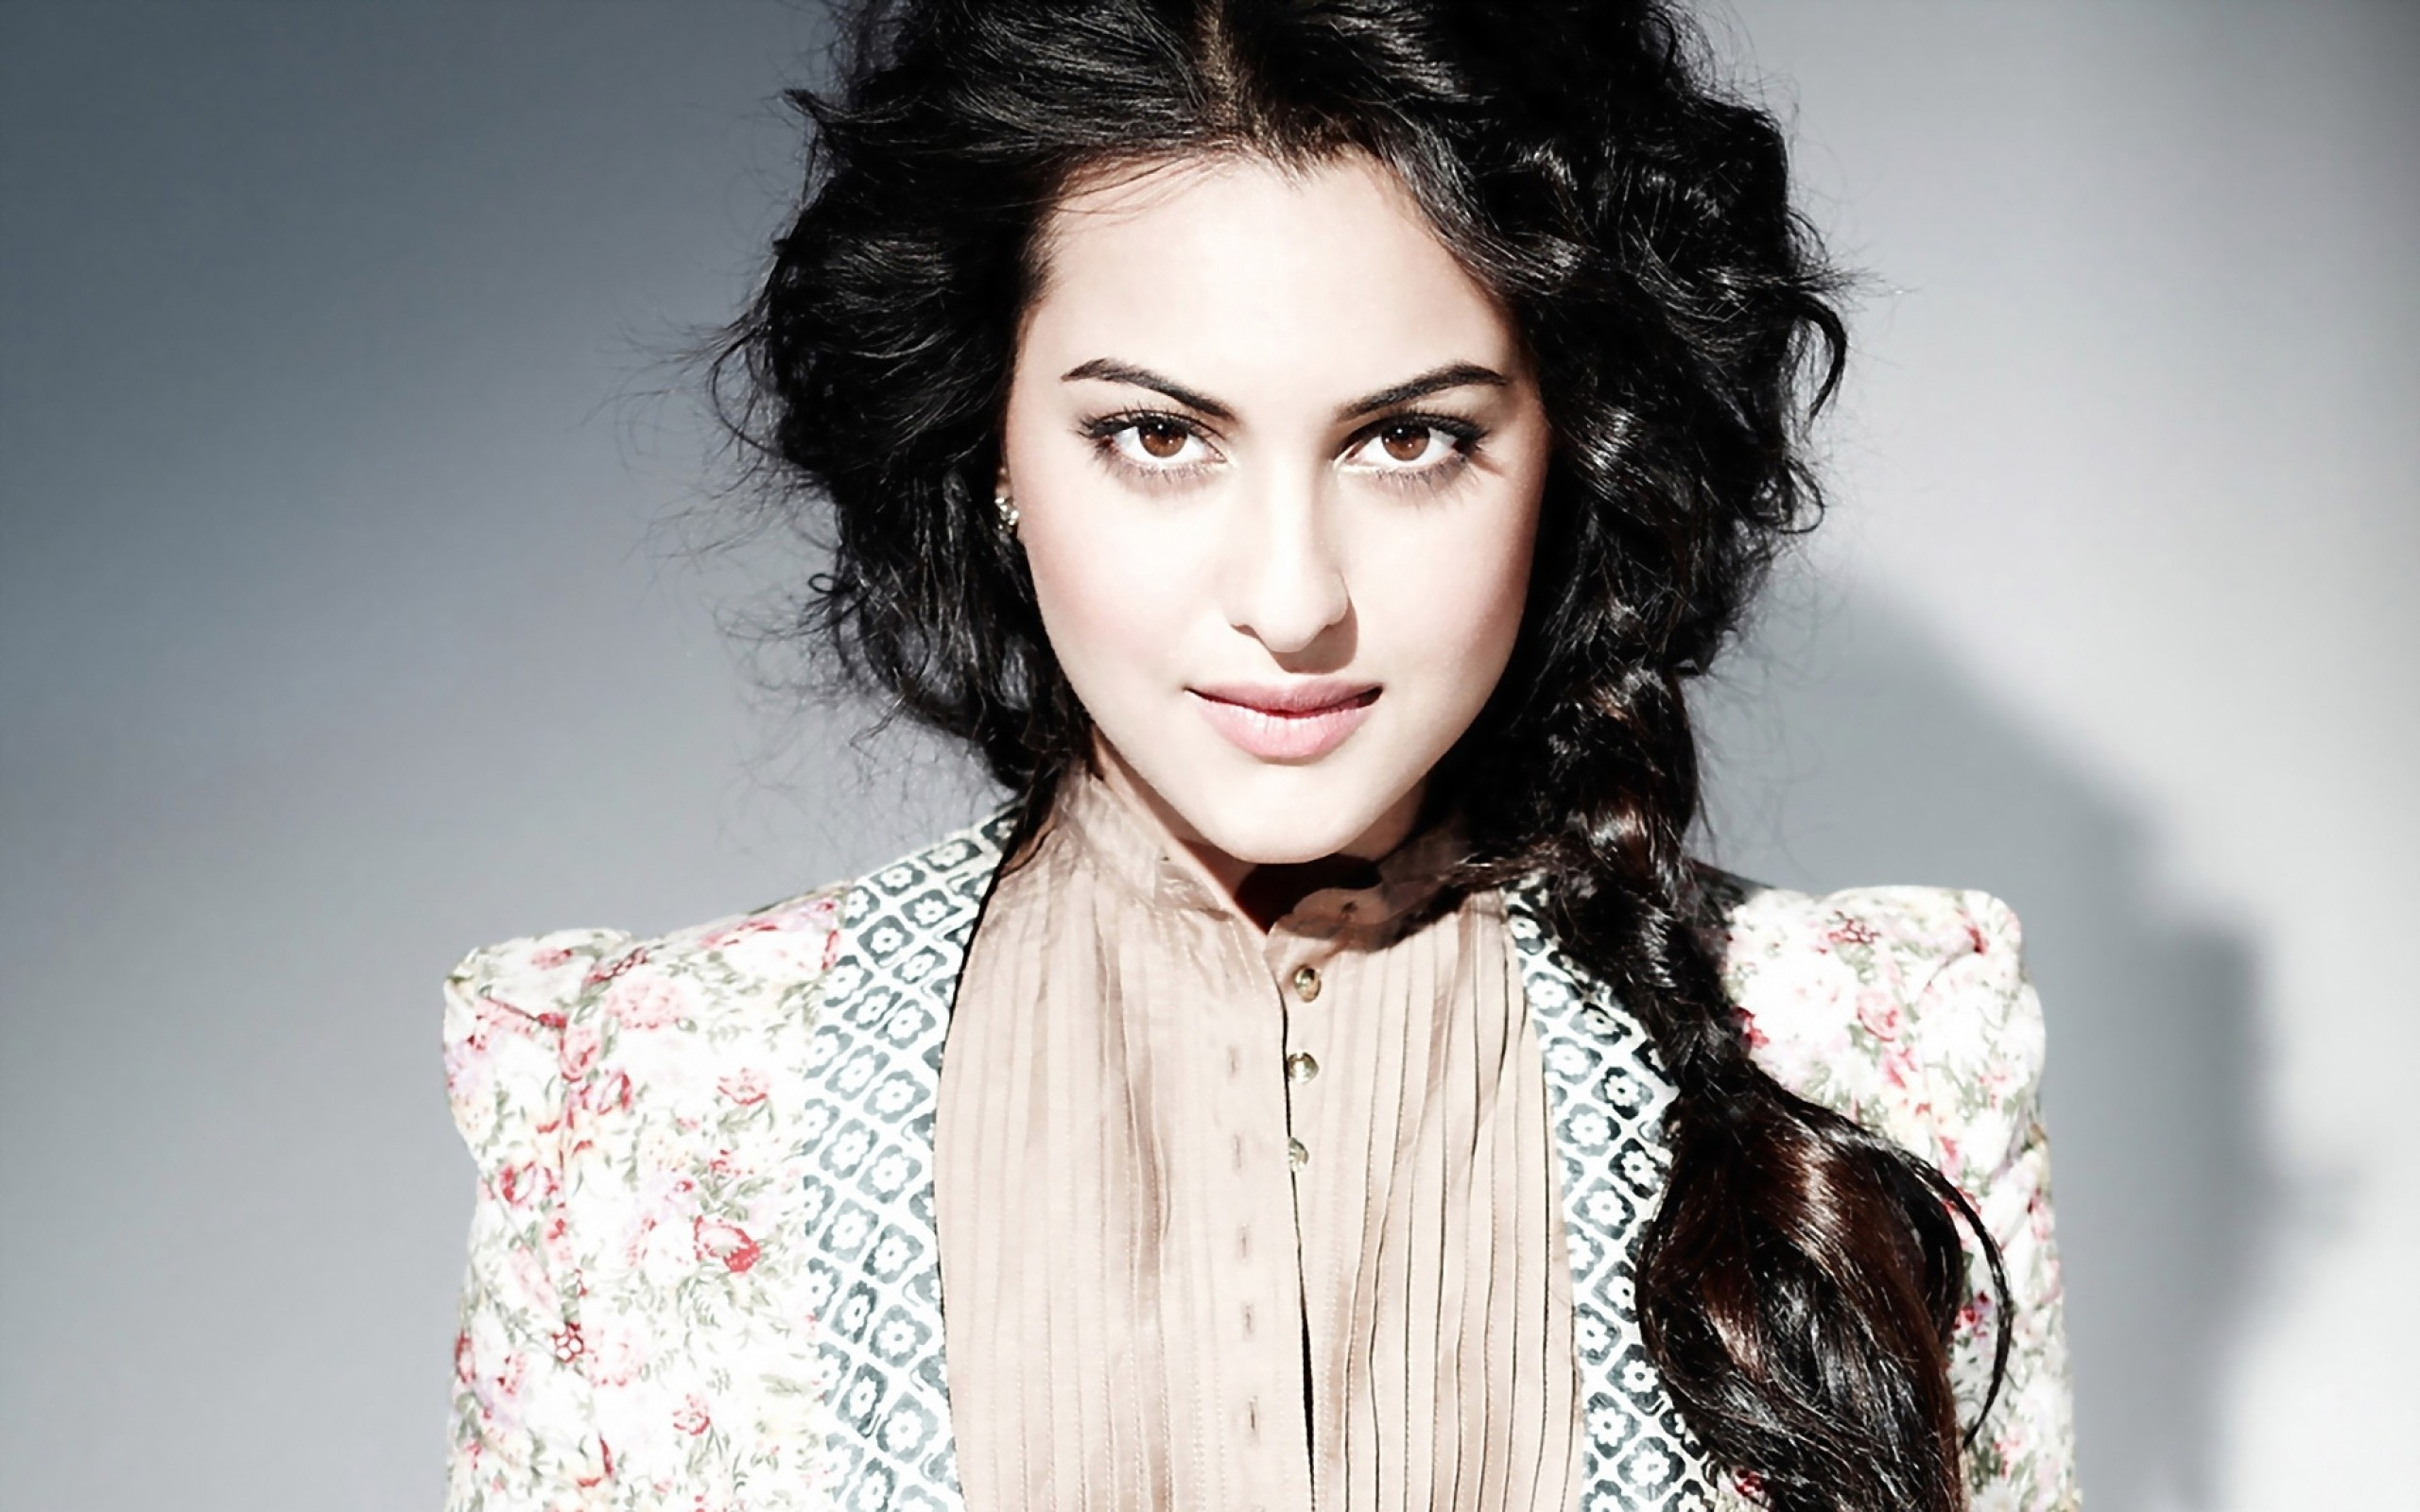 sonakshi sinha wallpaper - wallpaper, high definition, high quality